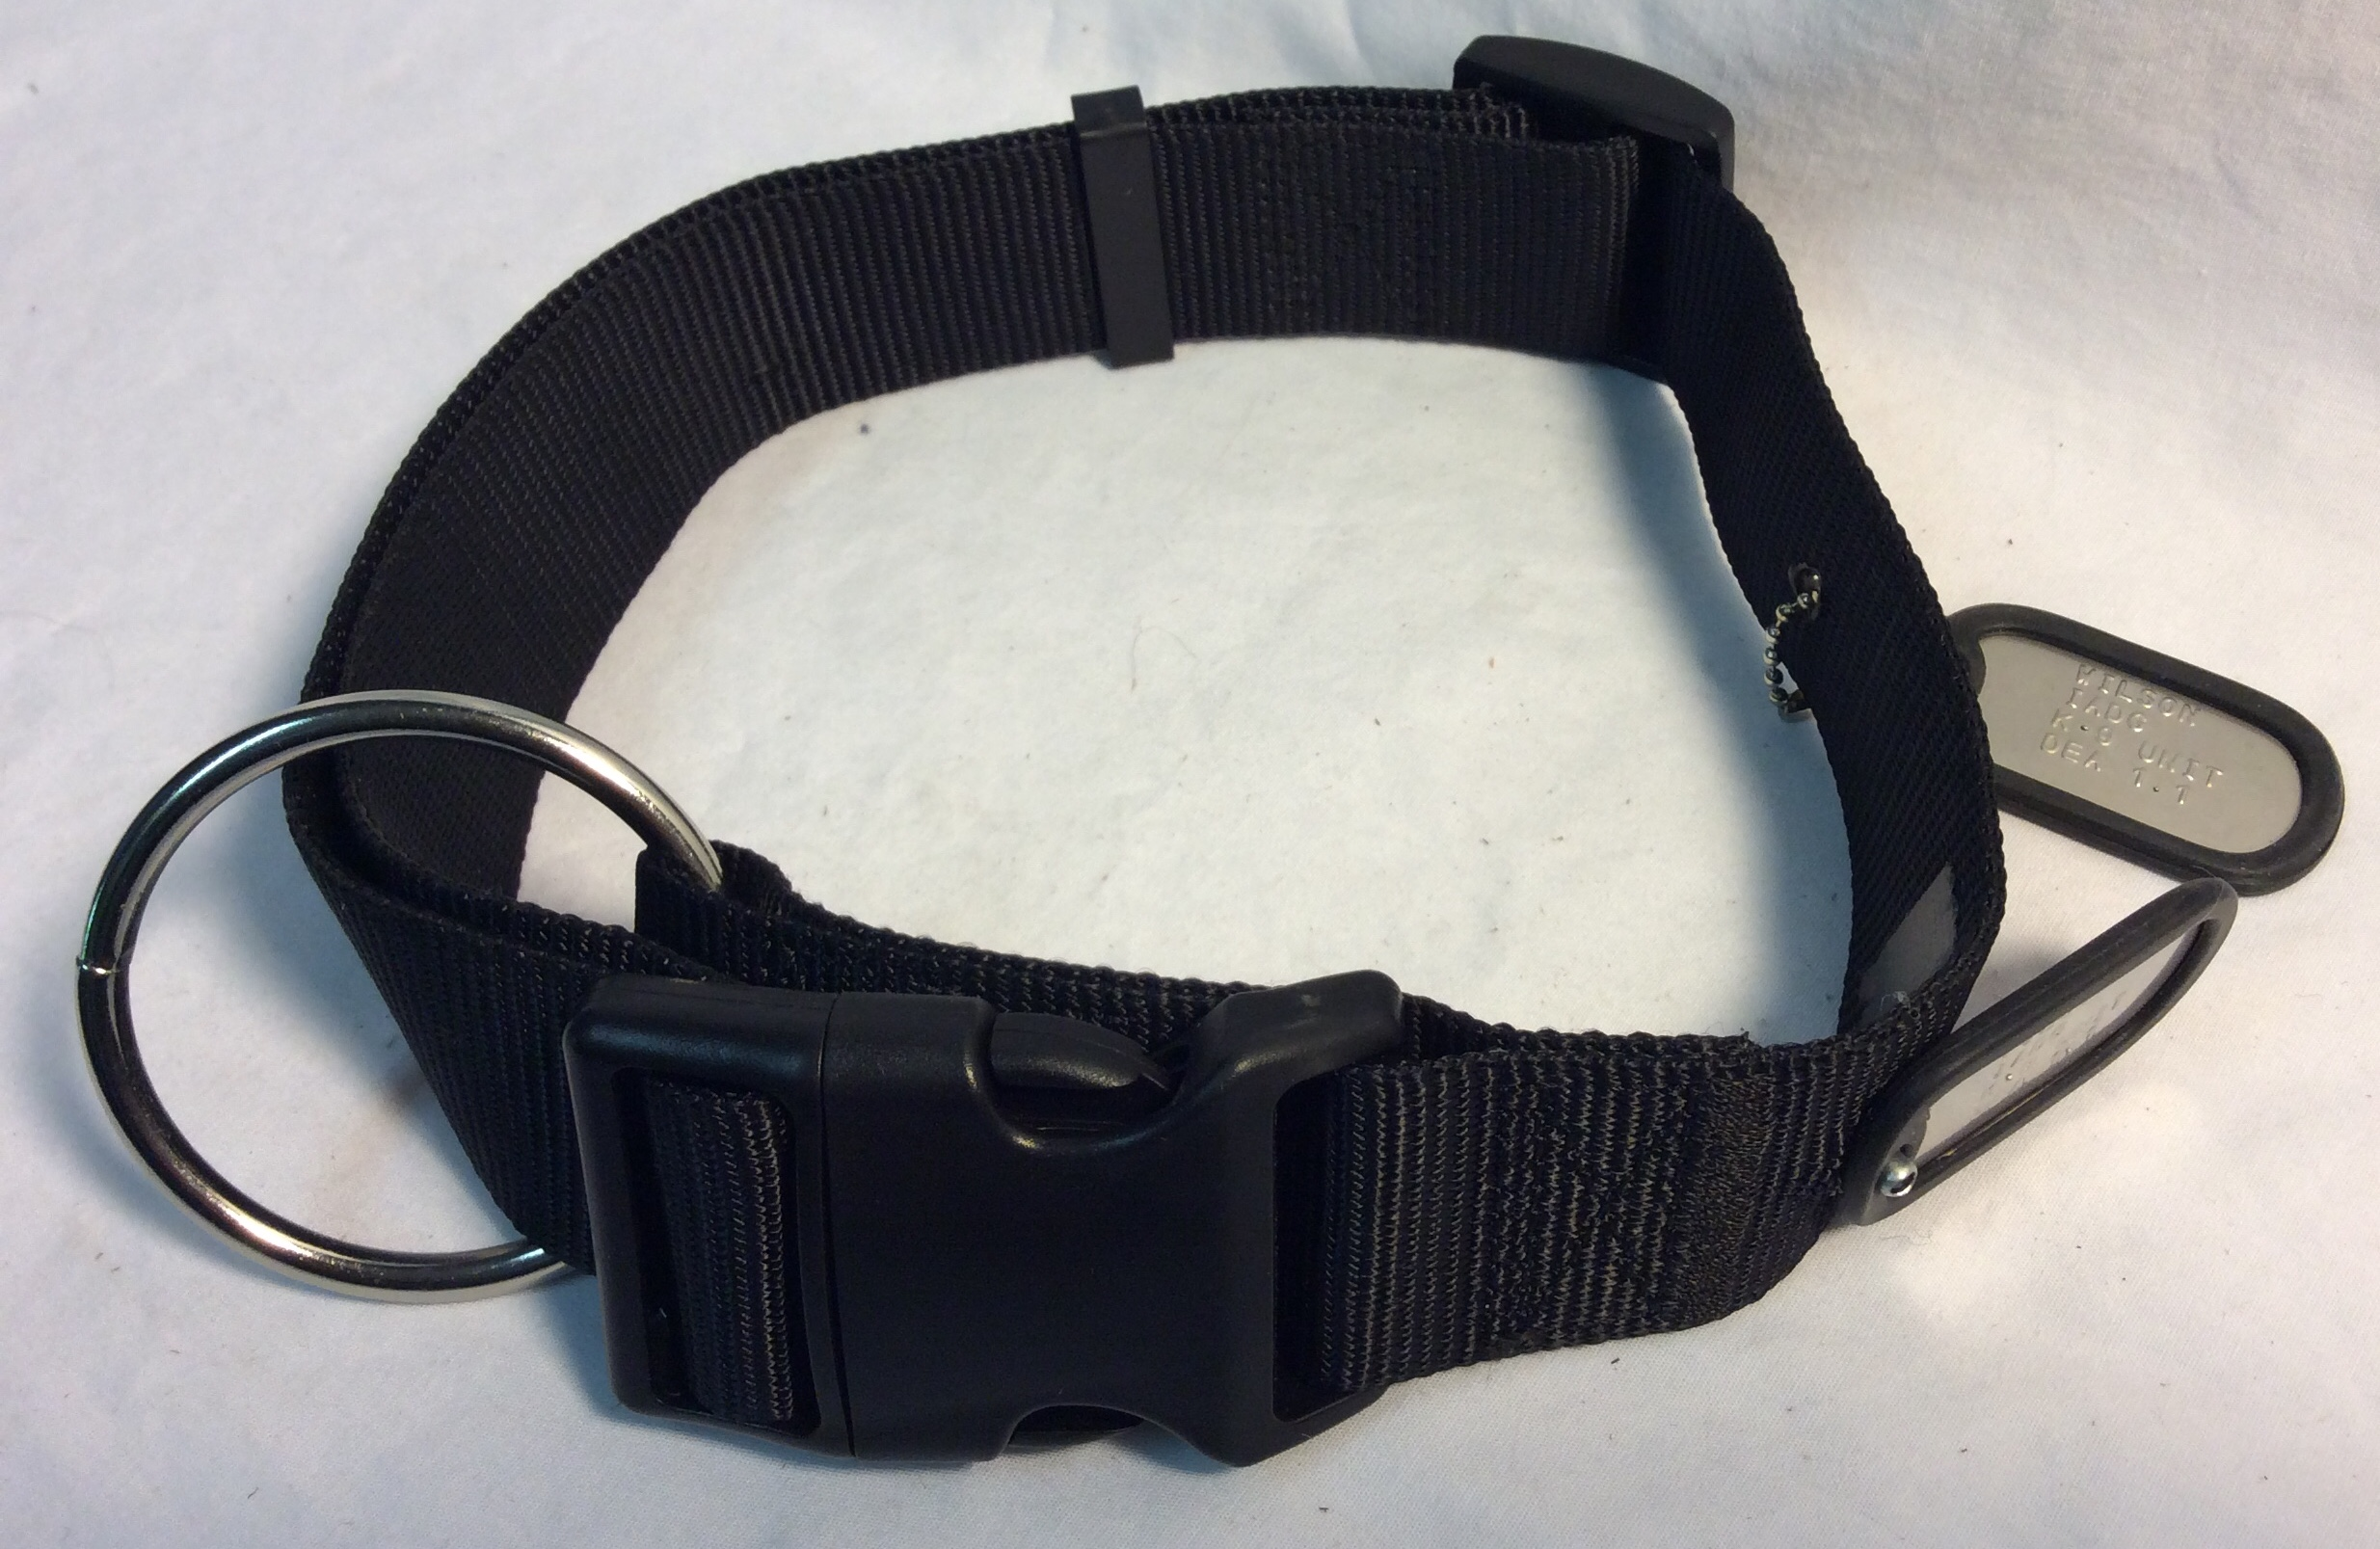 K-9 unit dog collar with wide strap